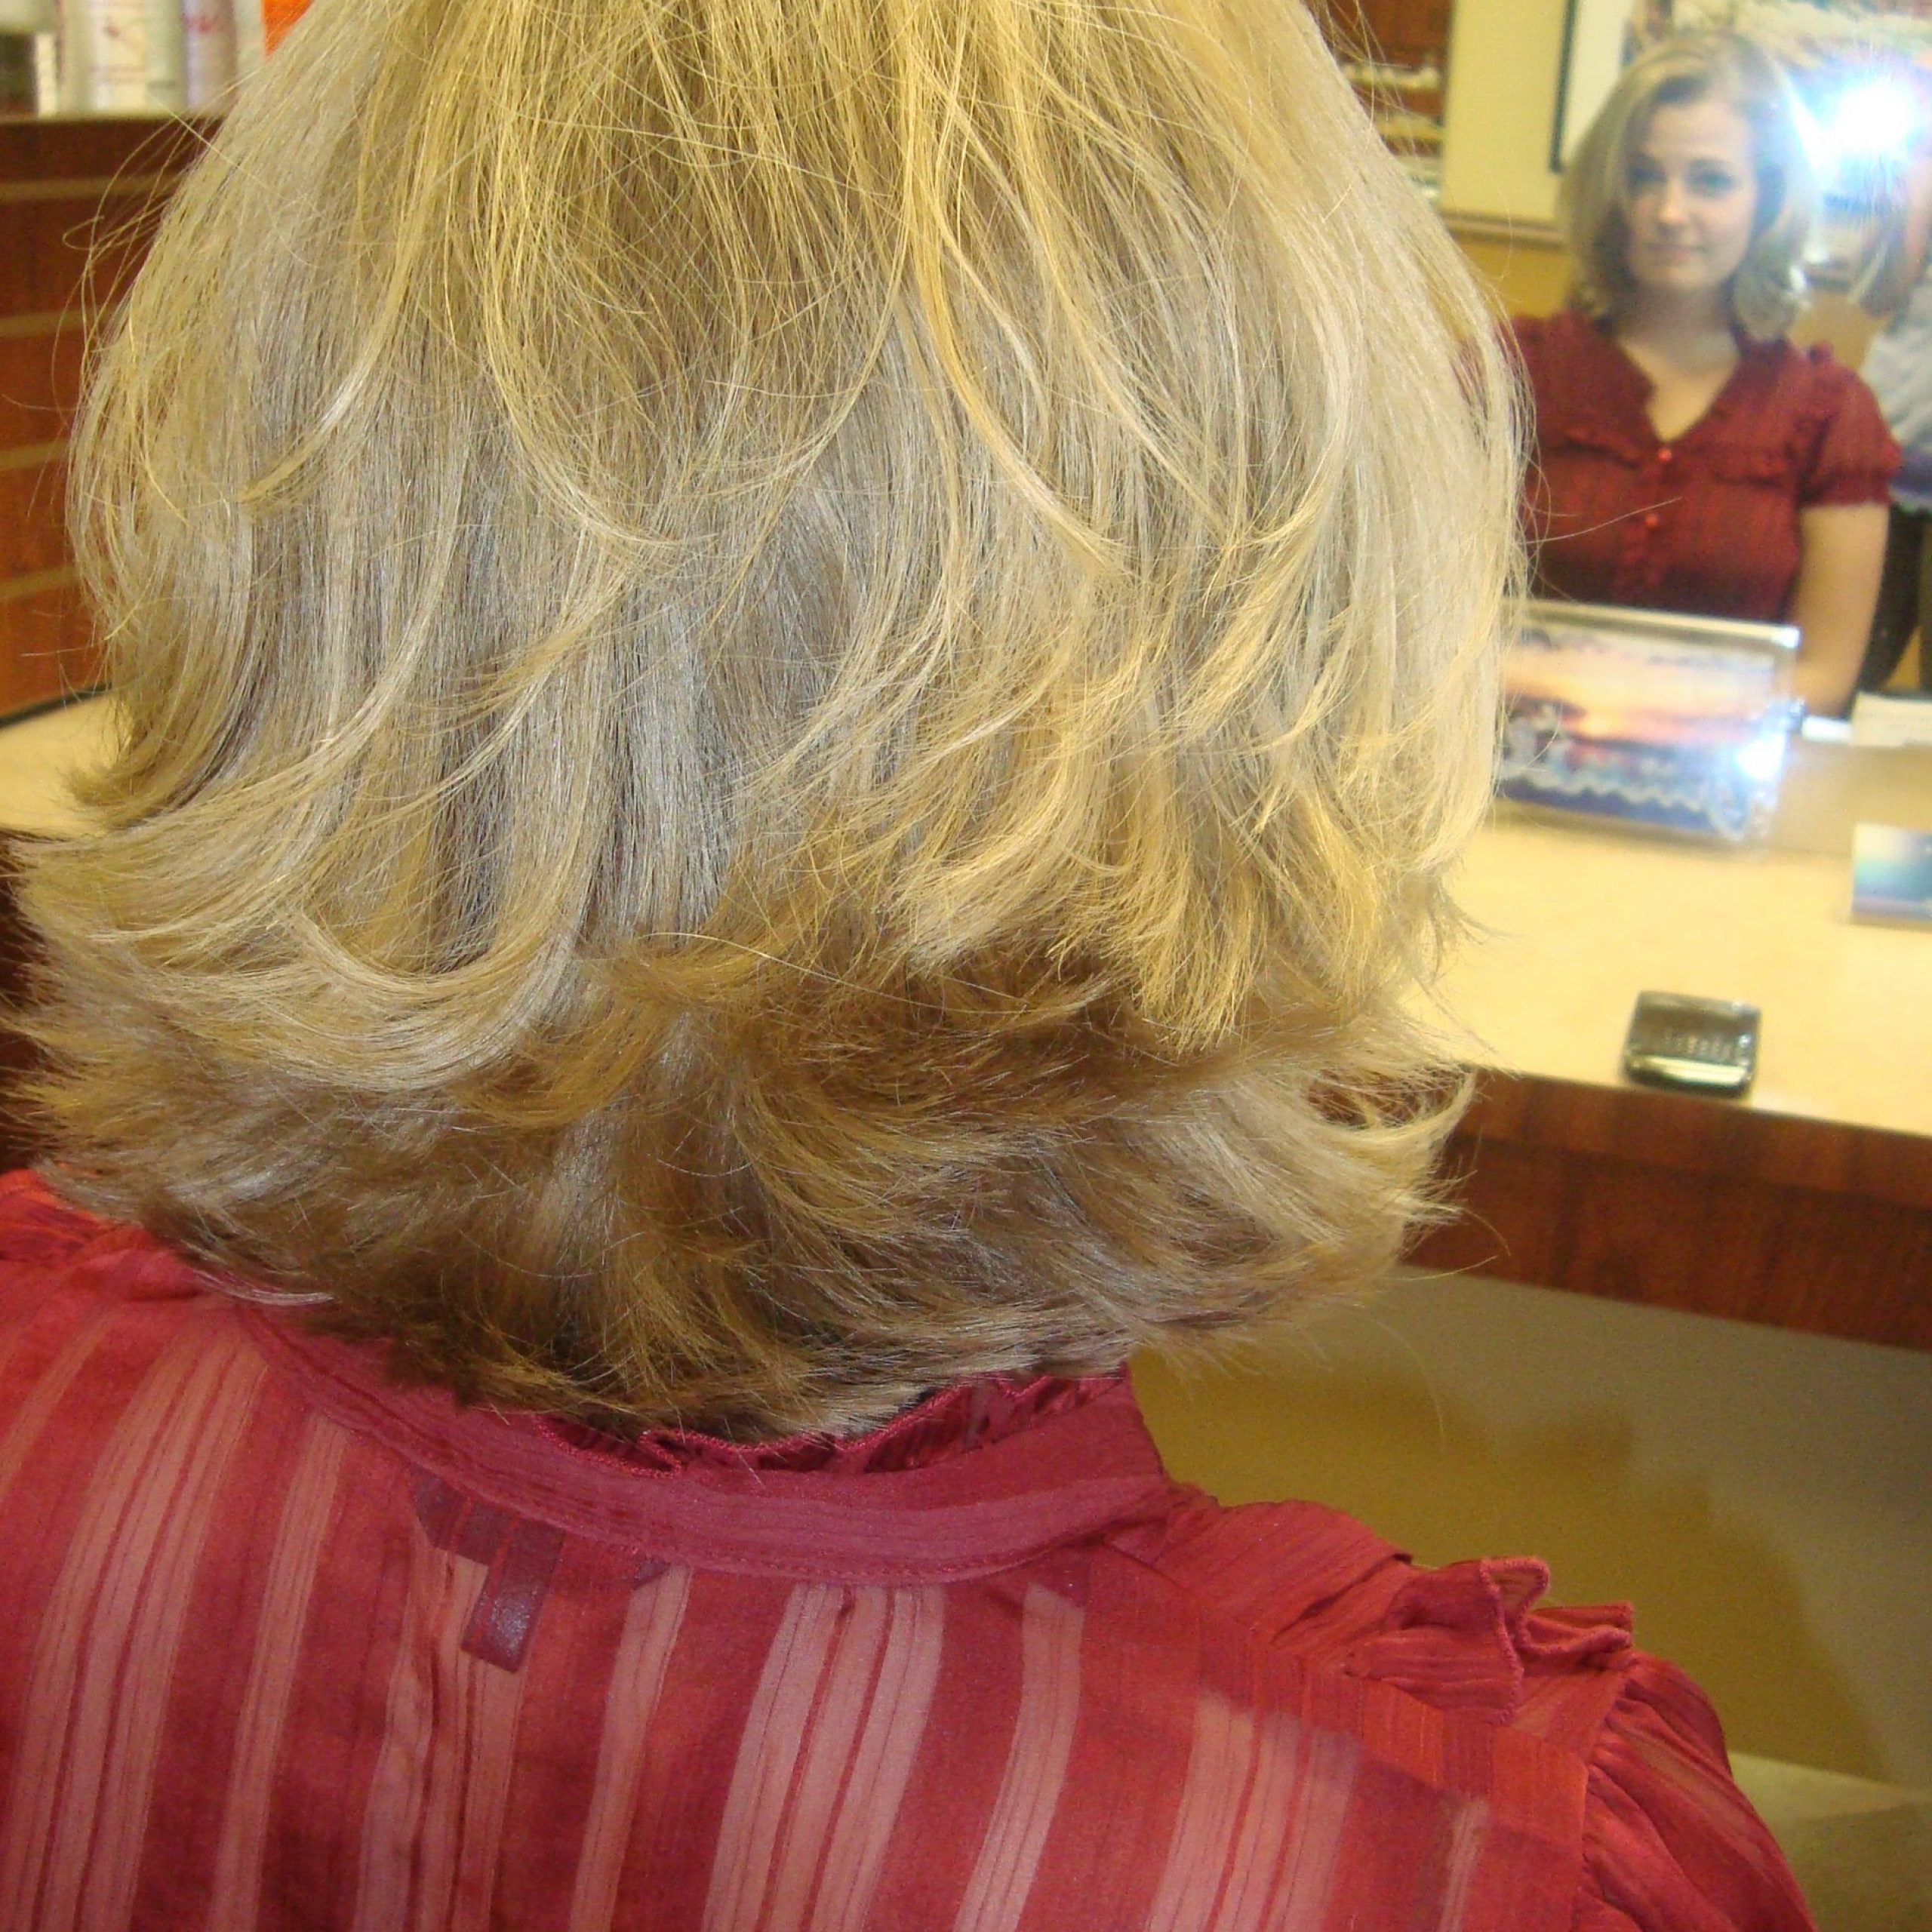 Newest Long Hairstyles With Short Flipped Up Layers With Short, Thick, And Blonde Flipped Hair, Low Maintenance And (View 11 of 20)